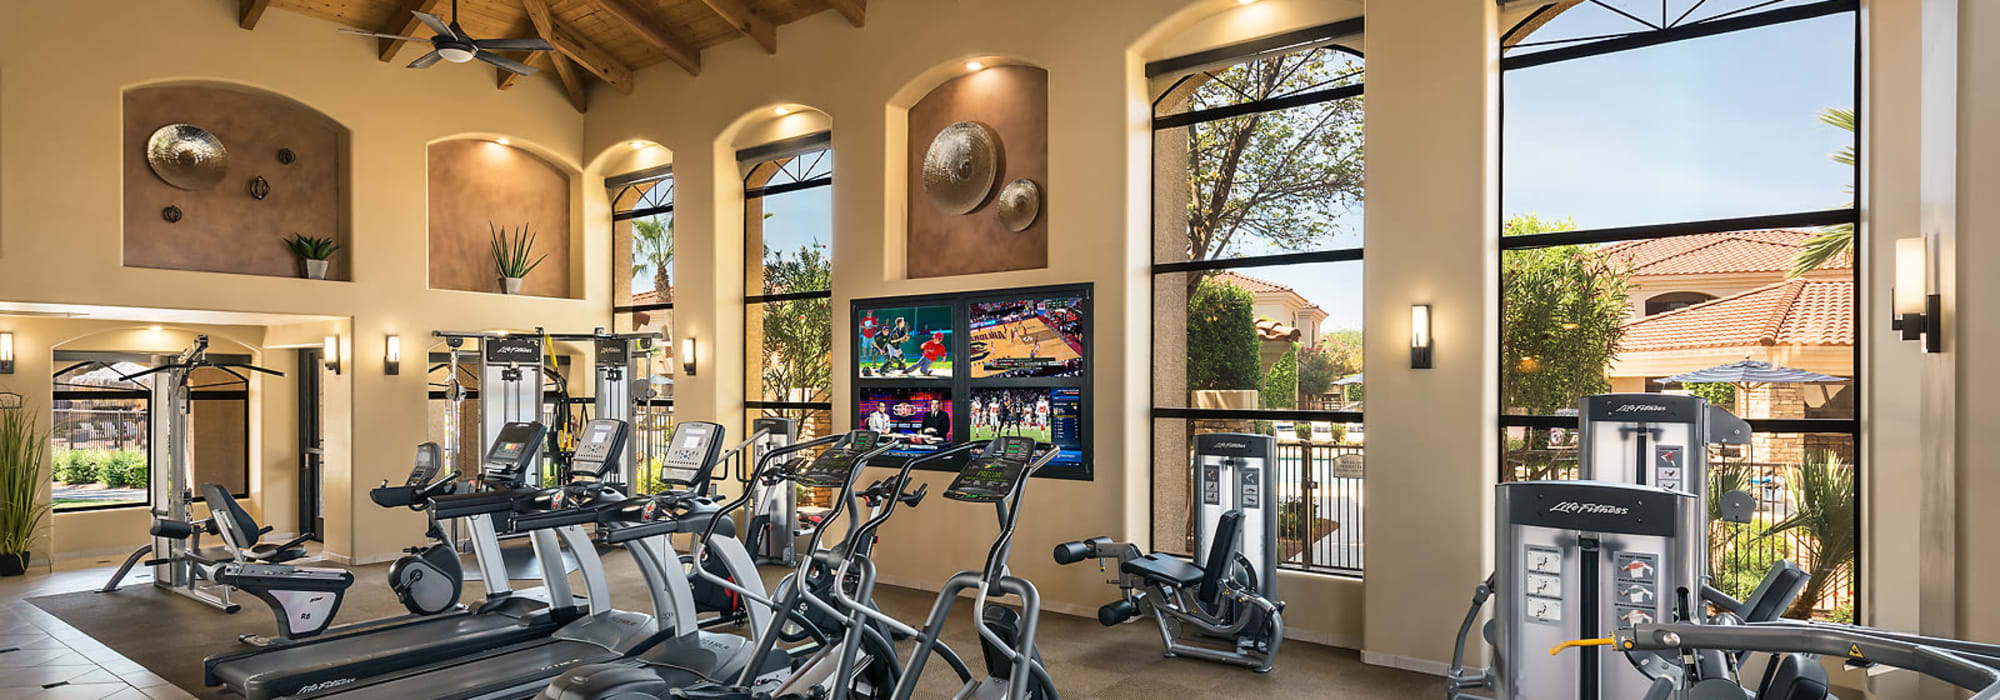 24 hour fitness center with equipment at San Lagos in Glendale, Arizona